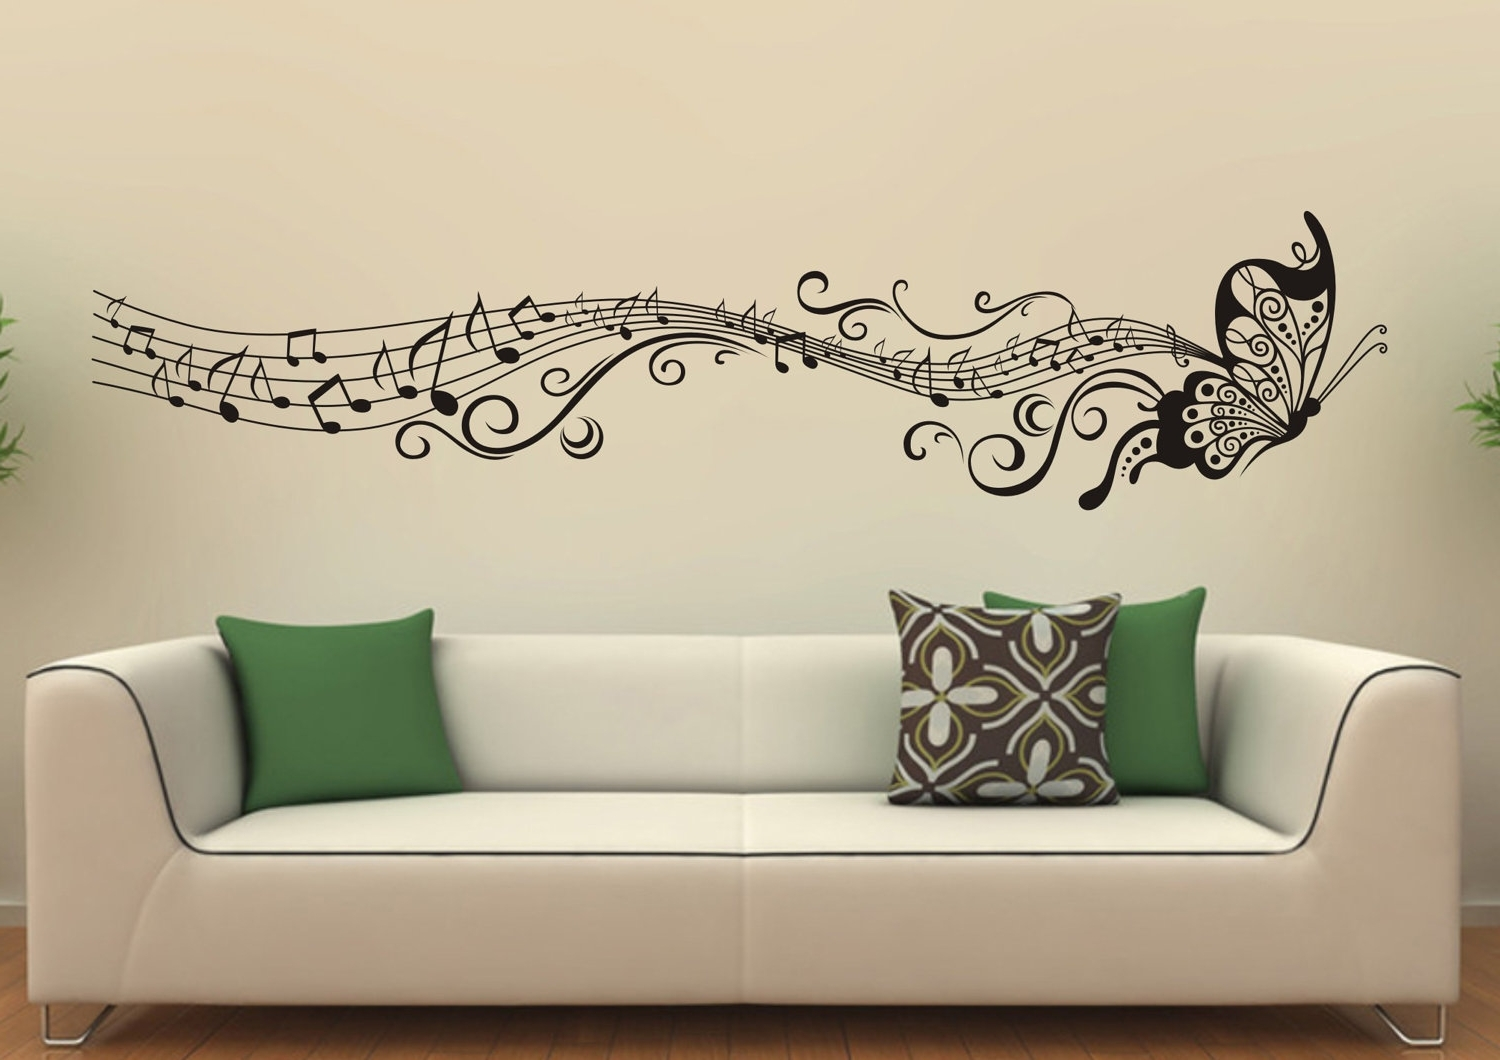 Home Wall Art Inside Current Wall Art Home Decor Simple With Photos Of Wall Decoration In Design (Gallery 8 of 15)